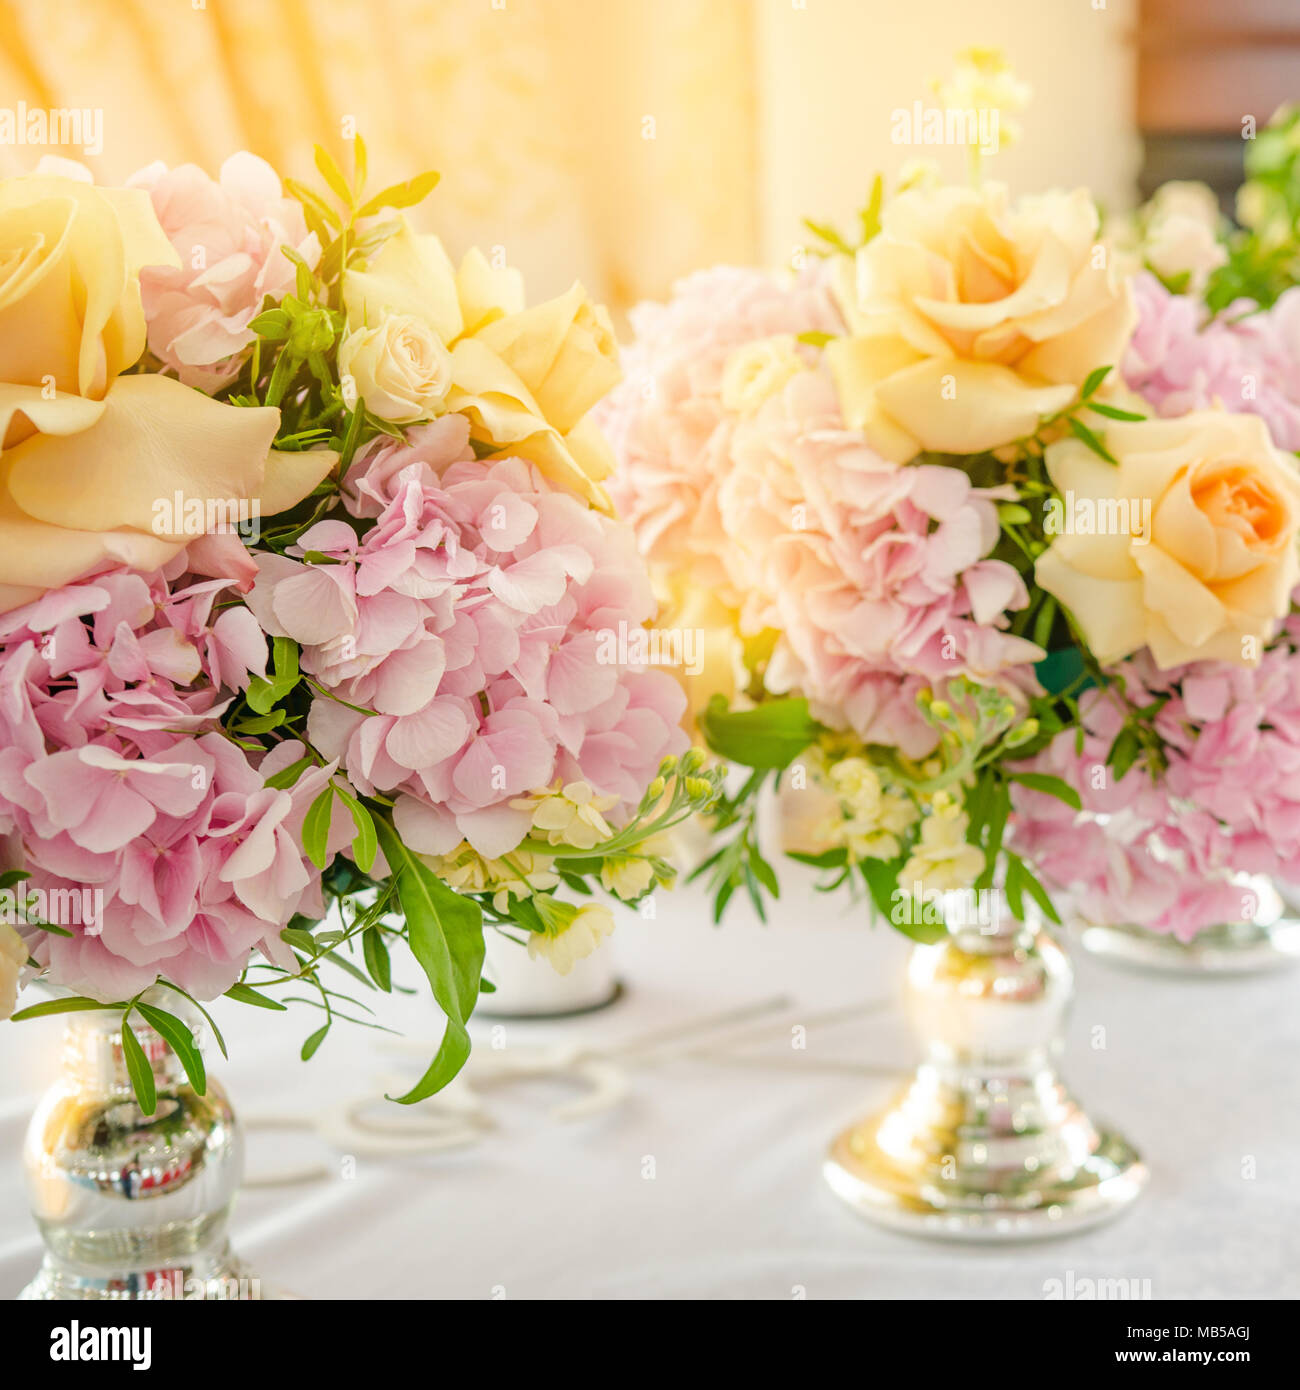 Still Life With A Wedding Bouquet Of Flowers Pink Hydrangeas And Yellow Rose On Table Close Up Stock Photo Alamy